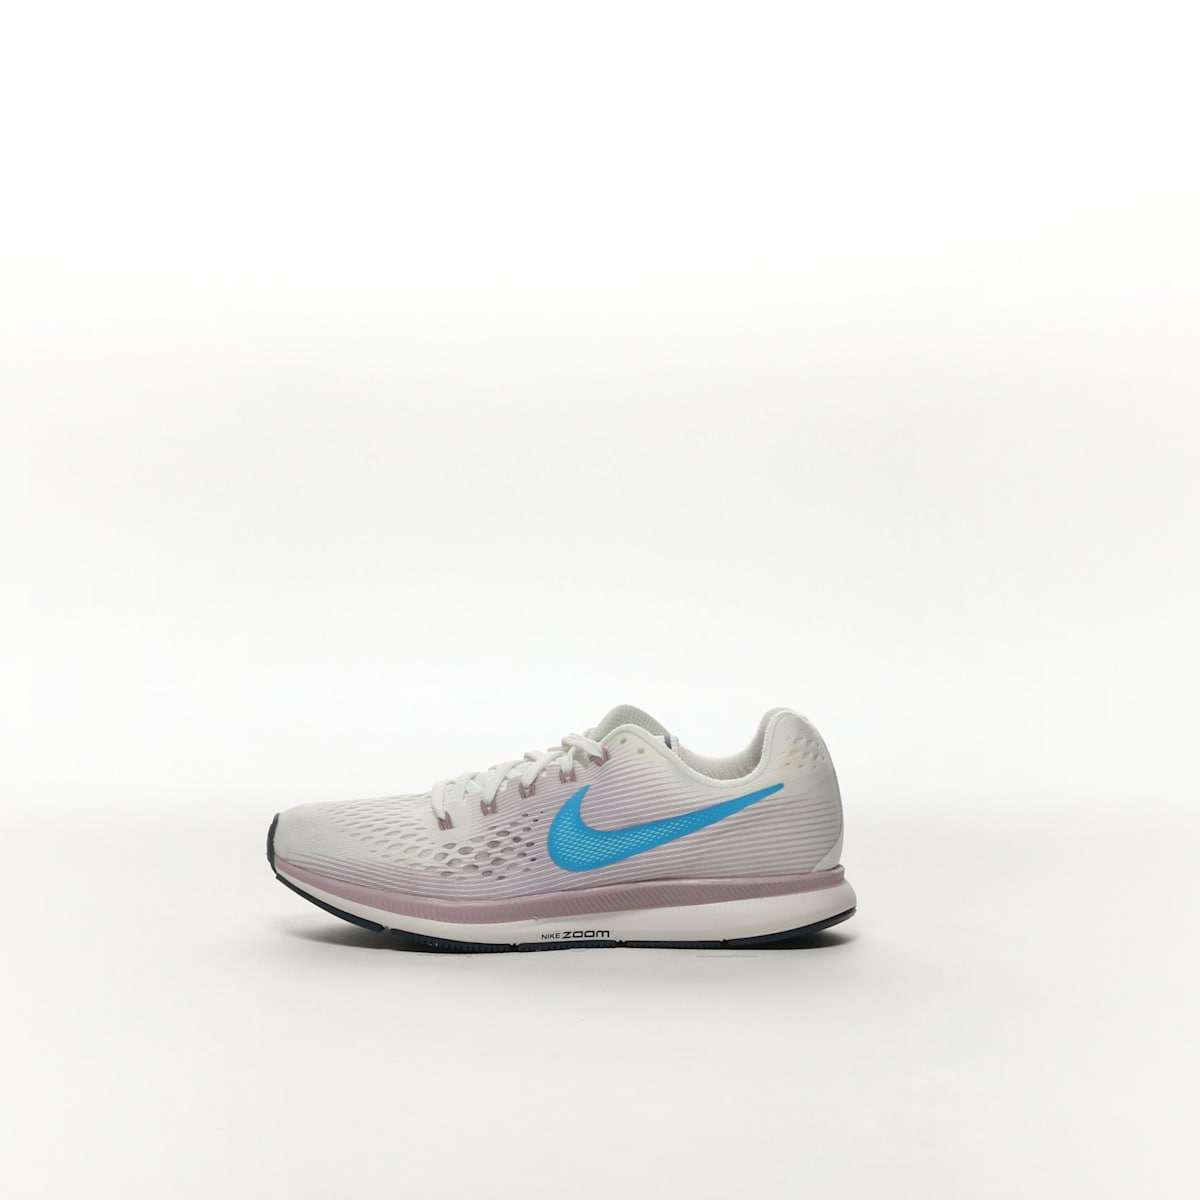 12ed5f1407a3 Nike Air Zoom Pegasus 34 - SUMMIT WHITE ELEMENTAL ROSE THUNDER BLUE ...